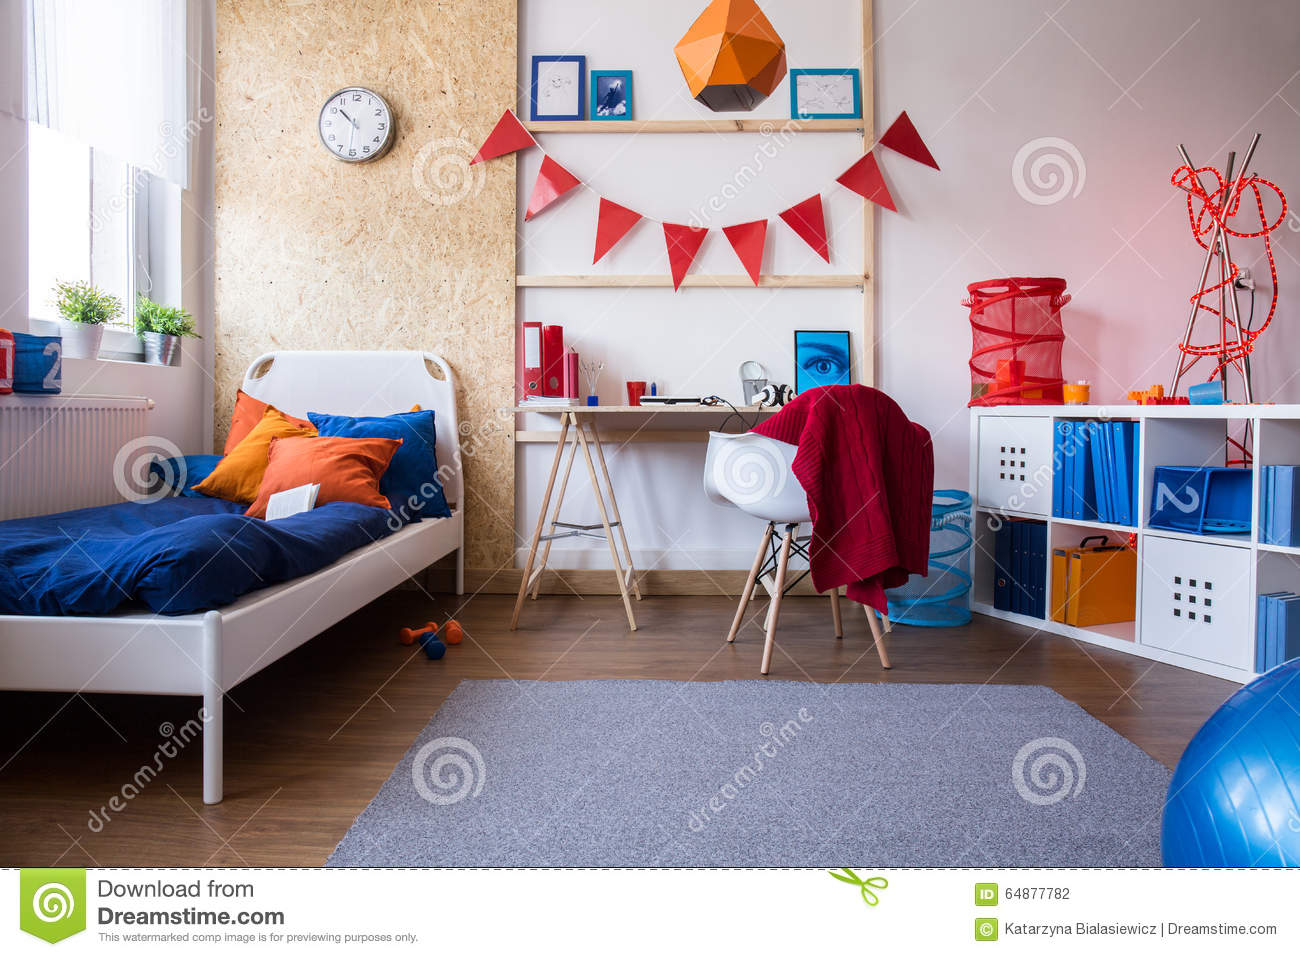 Teenager room interior design realistic image cartoon vector 81699143 - Colores habitaciones juveniles ...